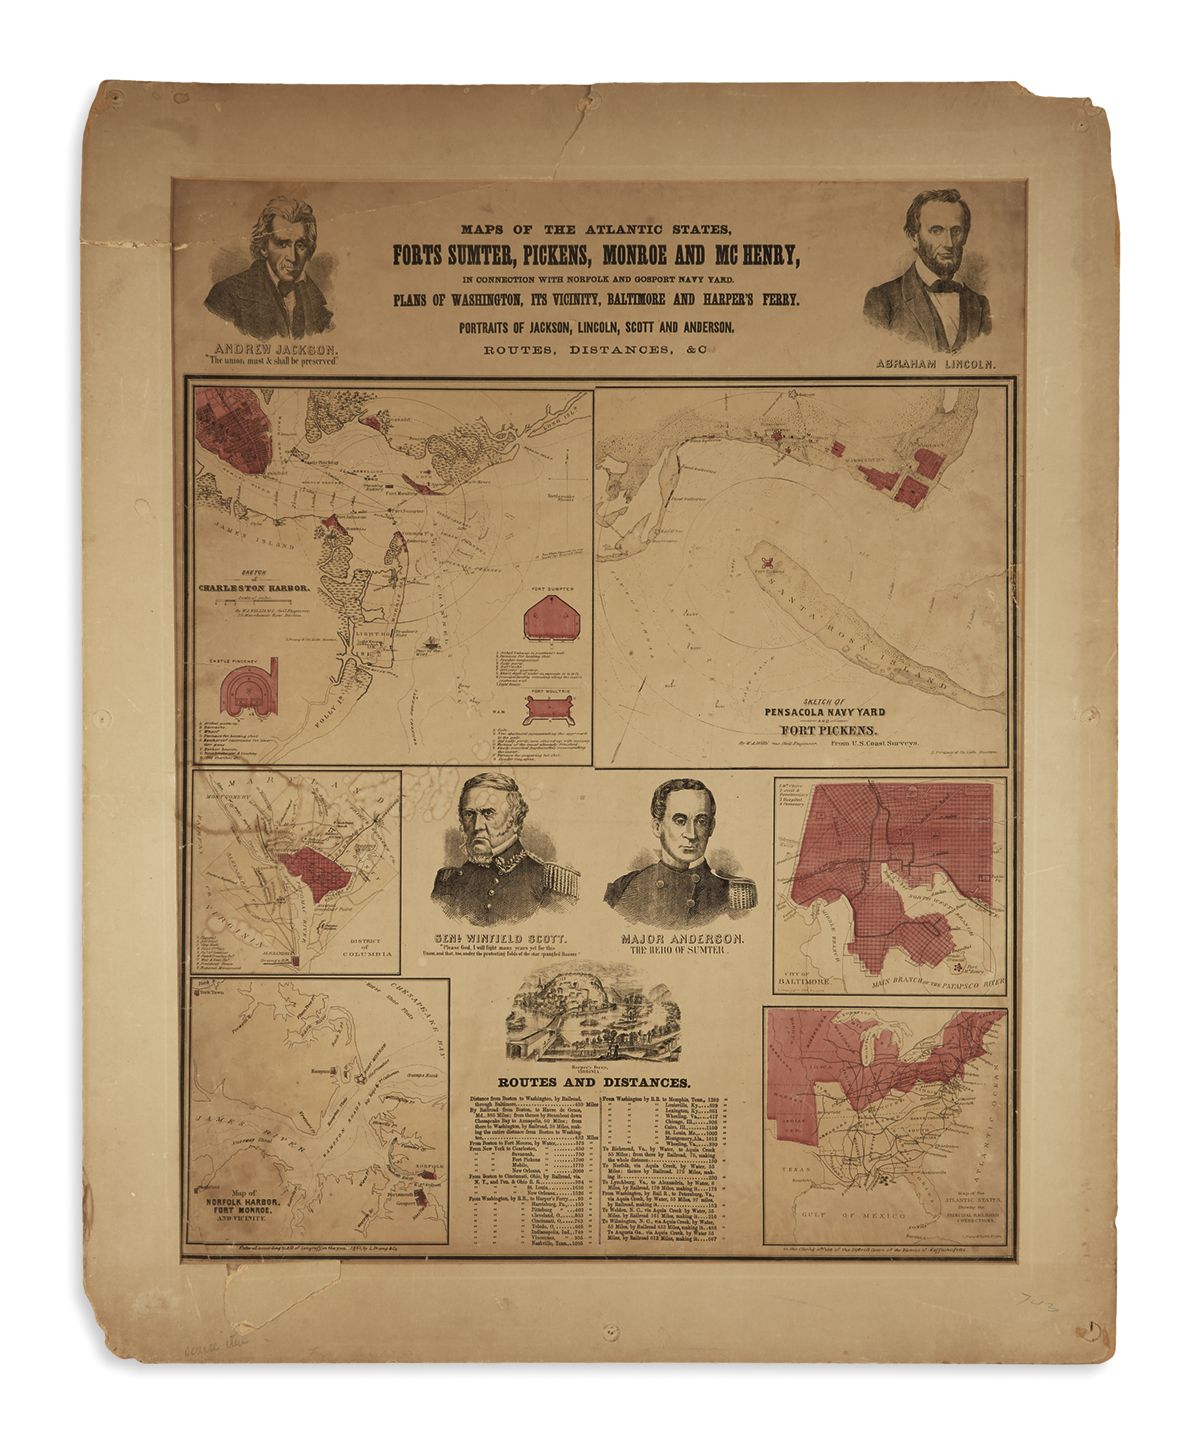 (PRINTS--PRESIDENTIAL)-Maps-of-the-Atlantic-States-Forts-Sum